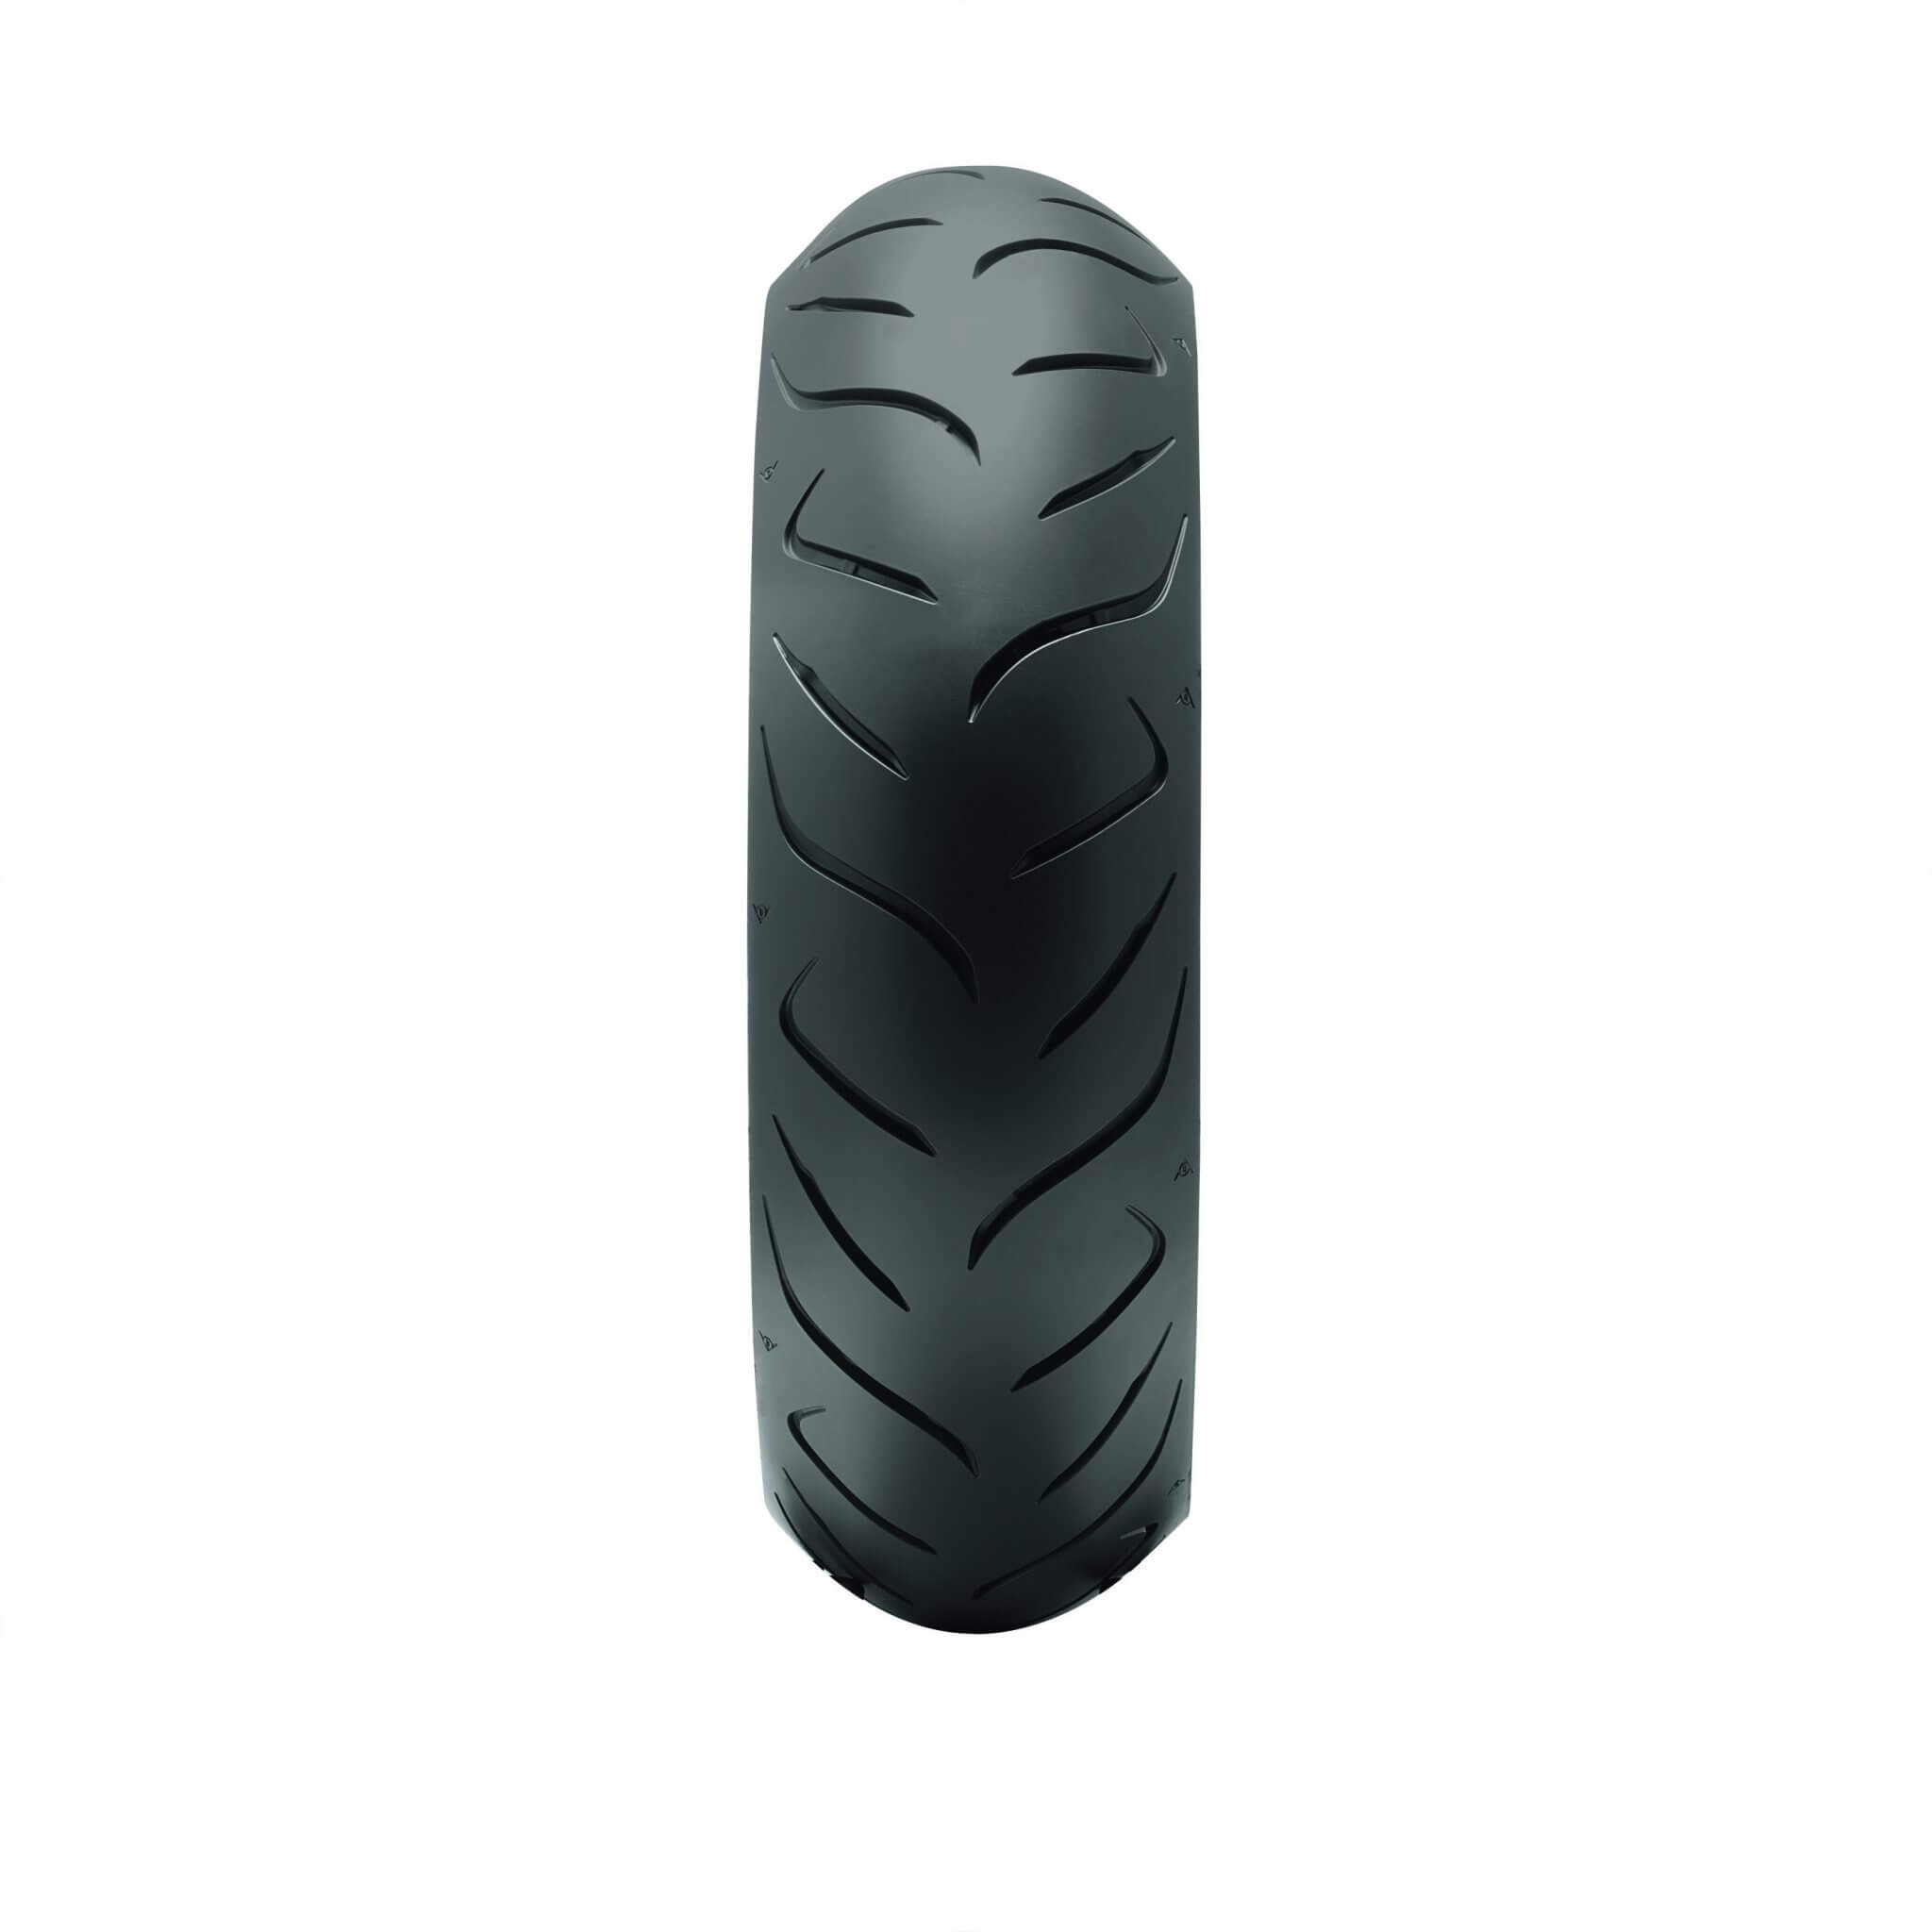 DUNLOP ROADSMART II REAR TREAD